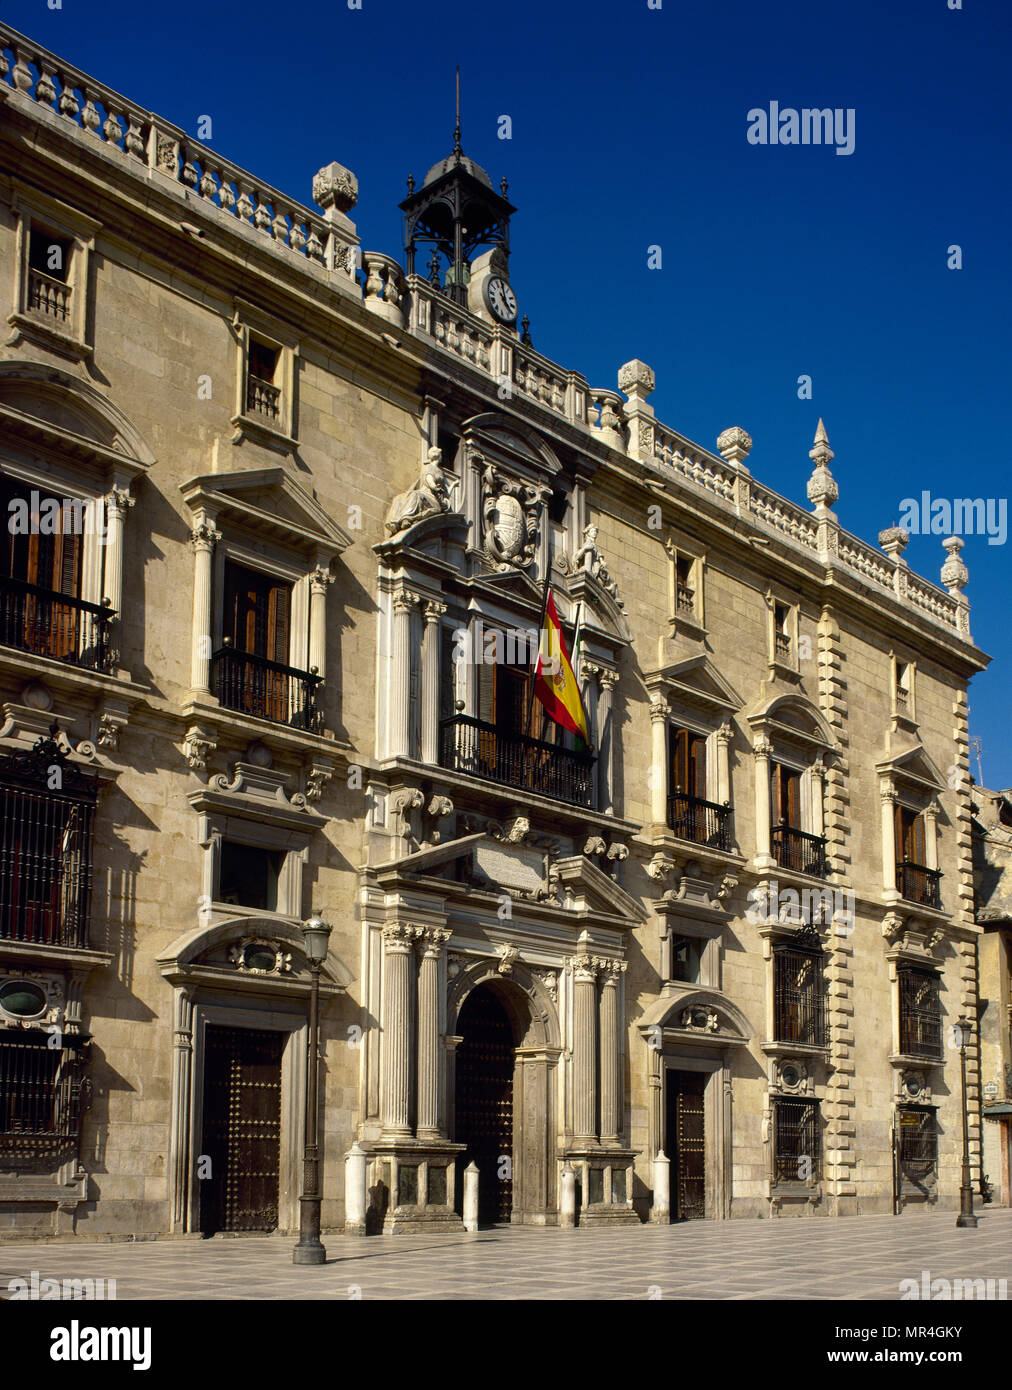 Granada, Andalusia, Spain. Palace of The Royal Chancellery. Institution created by the Catholic Monarchs, moving the Tribunal from Ciudad Real to Granada. This building dates from around 1530, during the reign of Charles I. It was designed by the Andalusian architect Francisco del Castillo el Mozo (1528-1586). - Stock Image